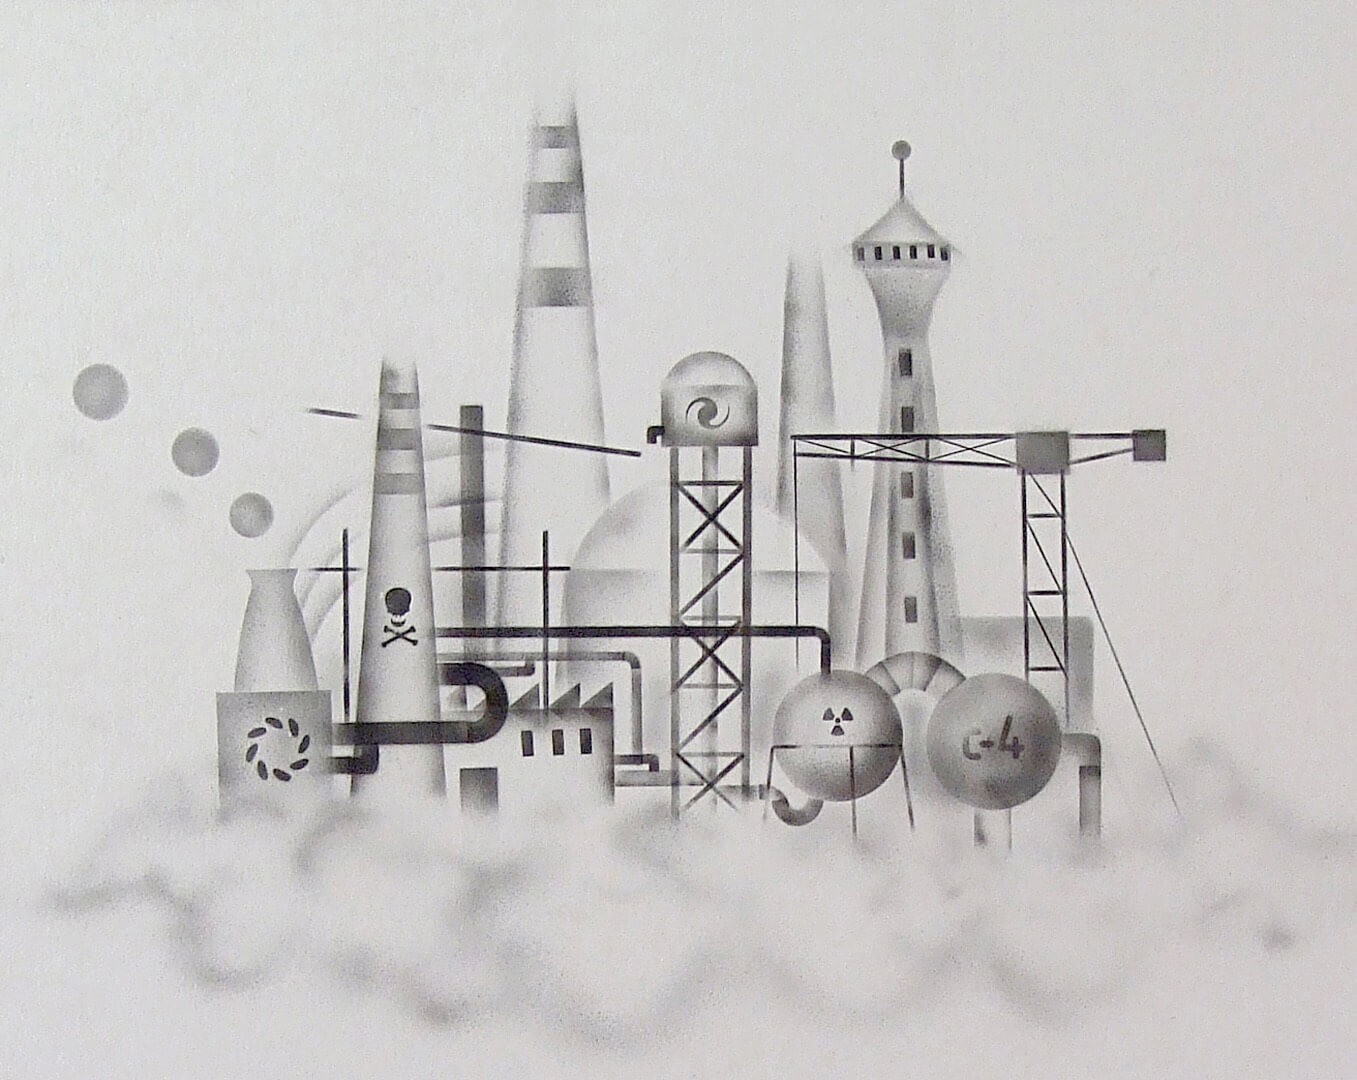 Factory 3, 100 x 70 cm, ink on paper, 2009.